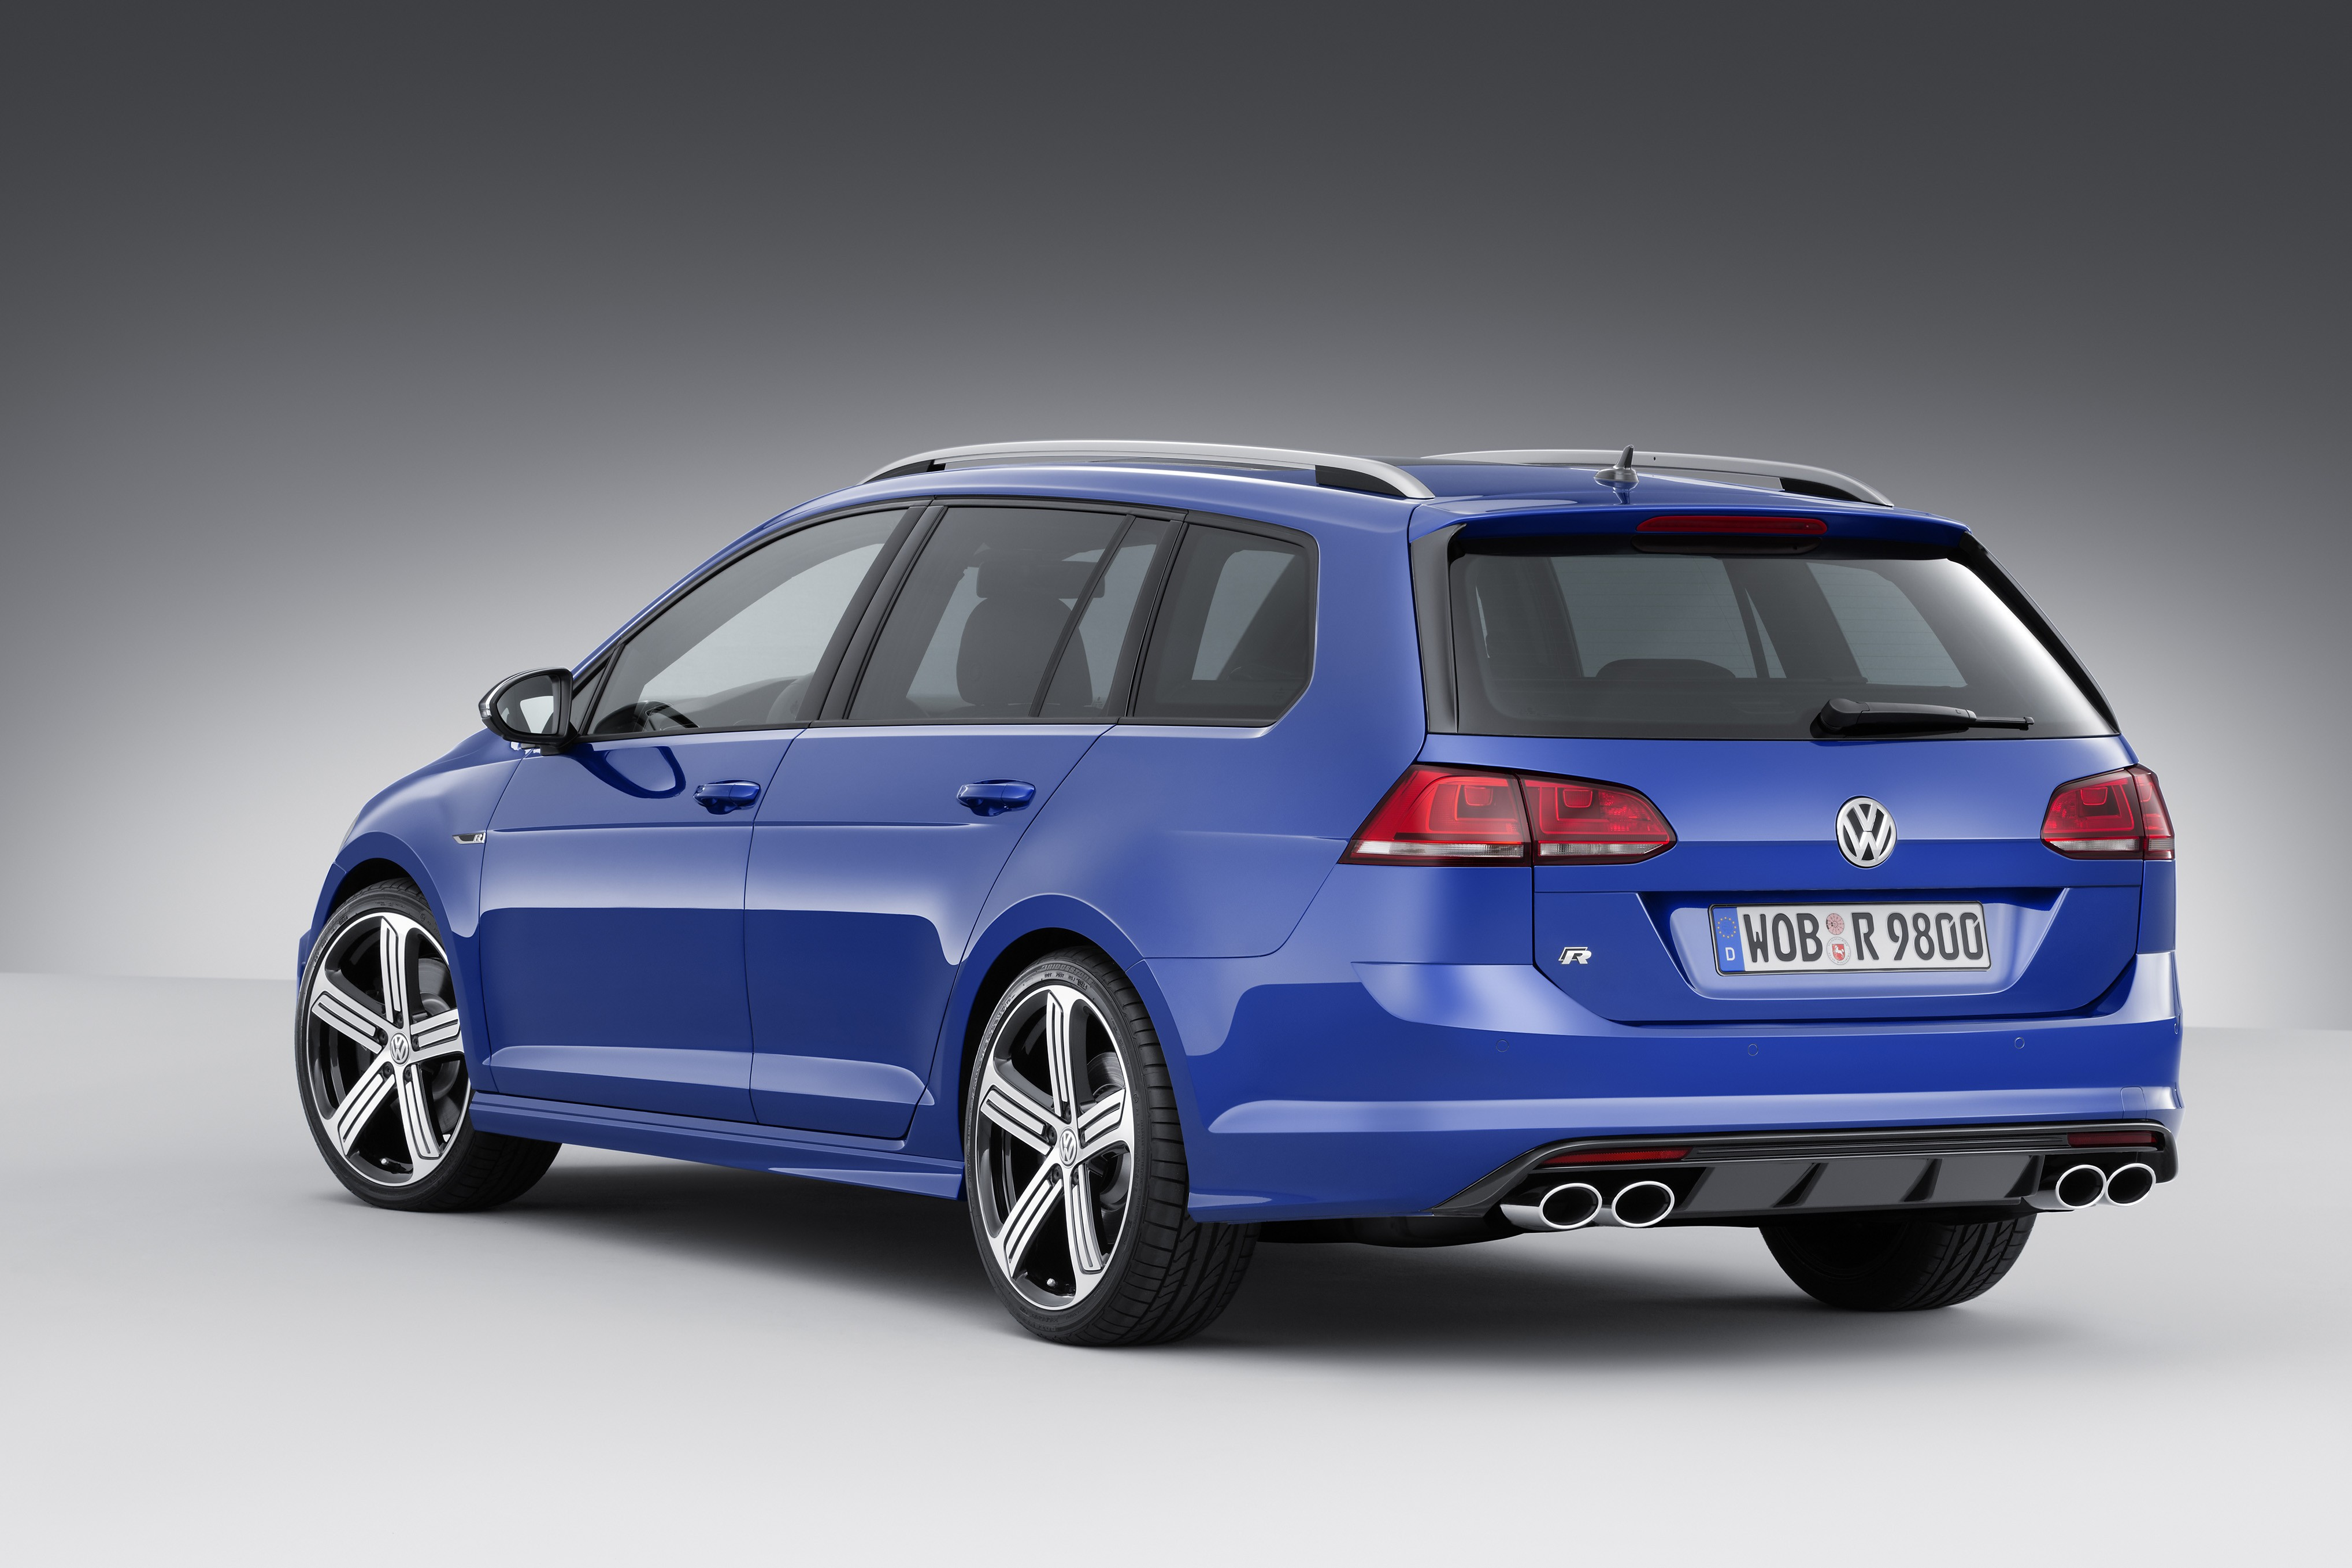 300 hp volkswagen golf r variant wagon revealed ahead of los angeles auto show autoevolution. Black Bedroom Furniture Sets. Home Design Ideas